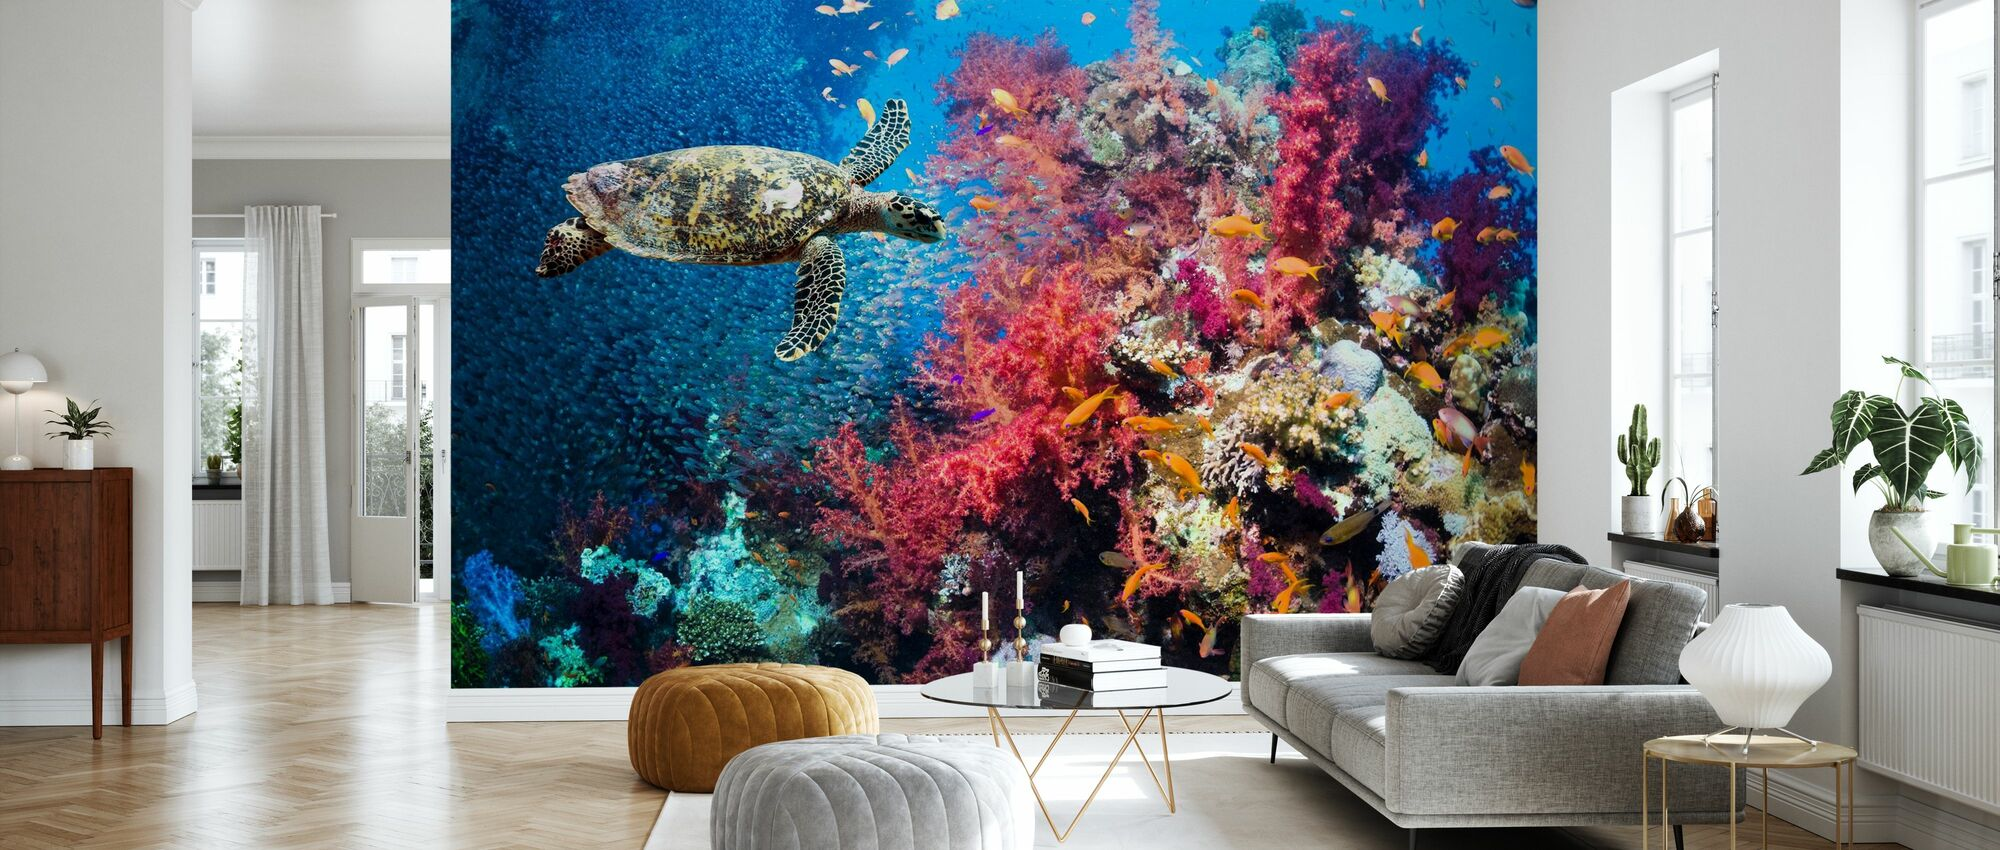 Turtle and Corals - Wallpaper - Living Room